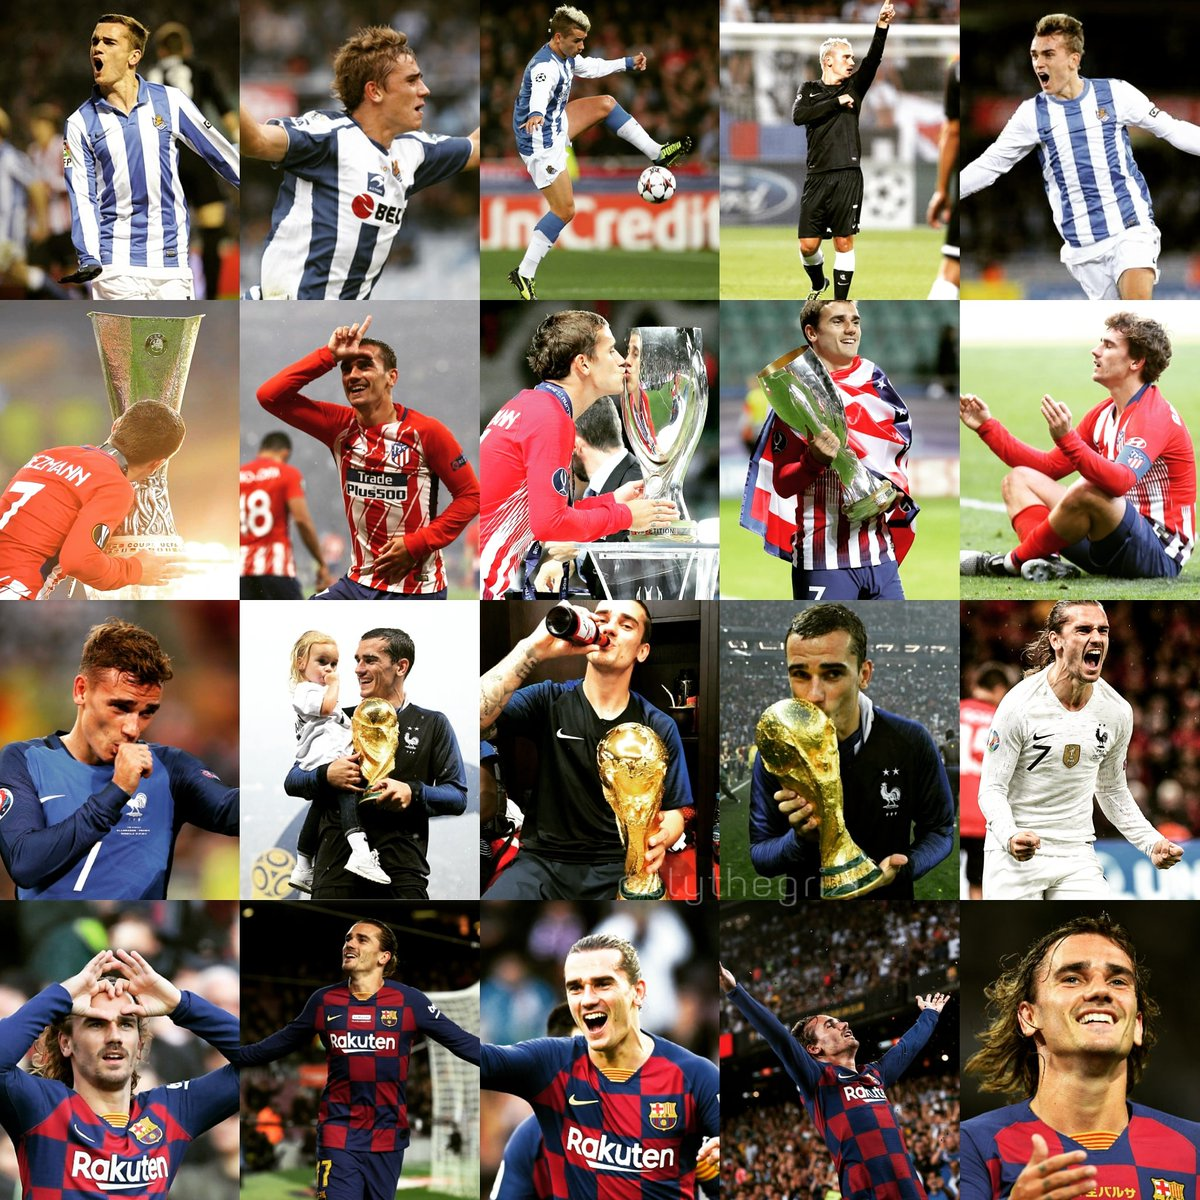 Happy birthday Anto, you are a player and a person that I admire very much, you will always be a great inspiration for me, continue to live happily and with love.  #TeamGrizi @AntoGriezmannpic.twitter.com/kJAbumgLuz